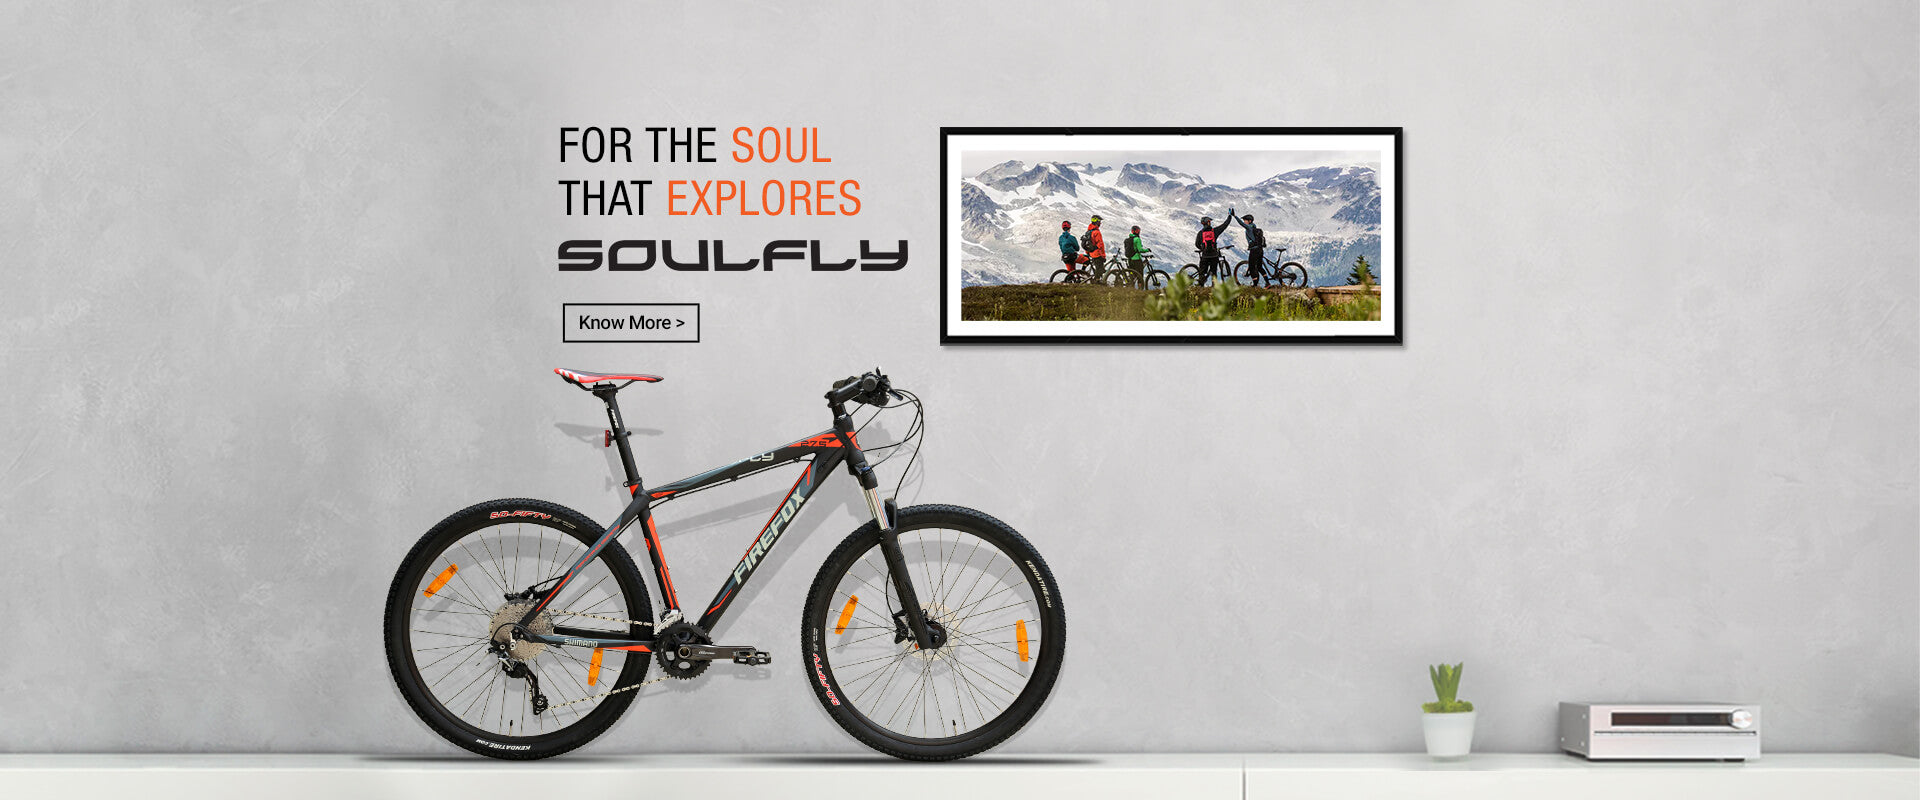 FIREFOX SOULFLY BICYCLE